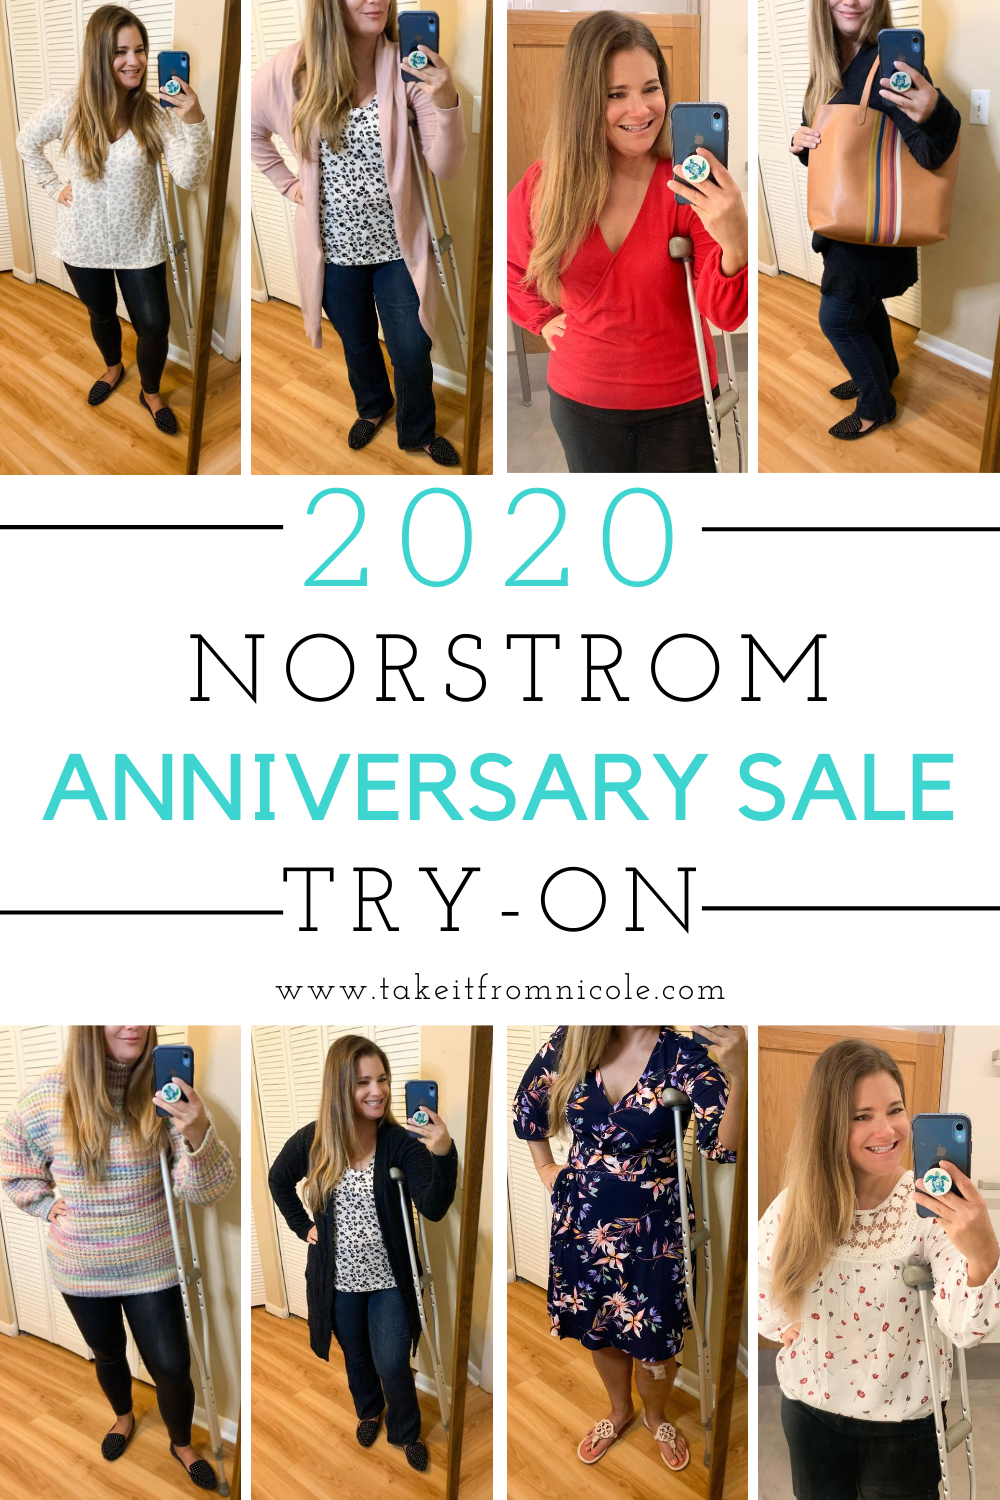 My 2020 Nordstrom Anniversary Sale try on post! Get the inside scoop on the best pieces and tips for fit and sizing. Always my favorite blog post of the year!